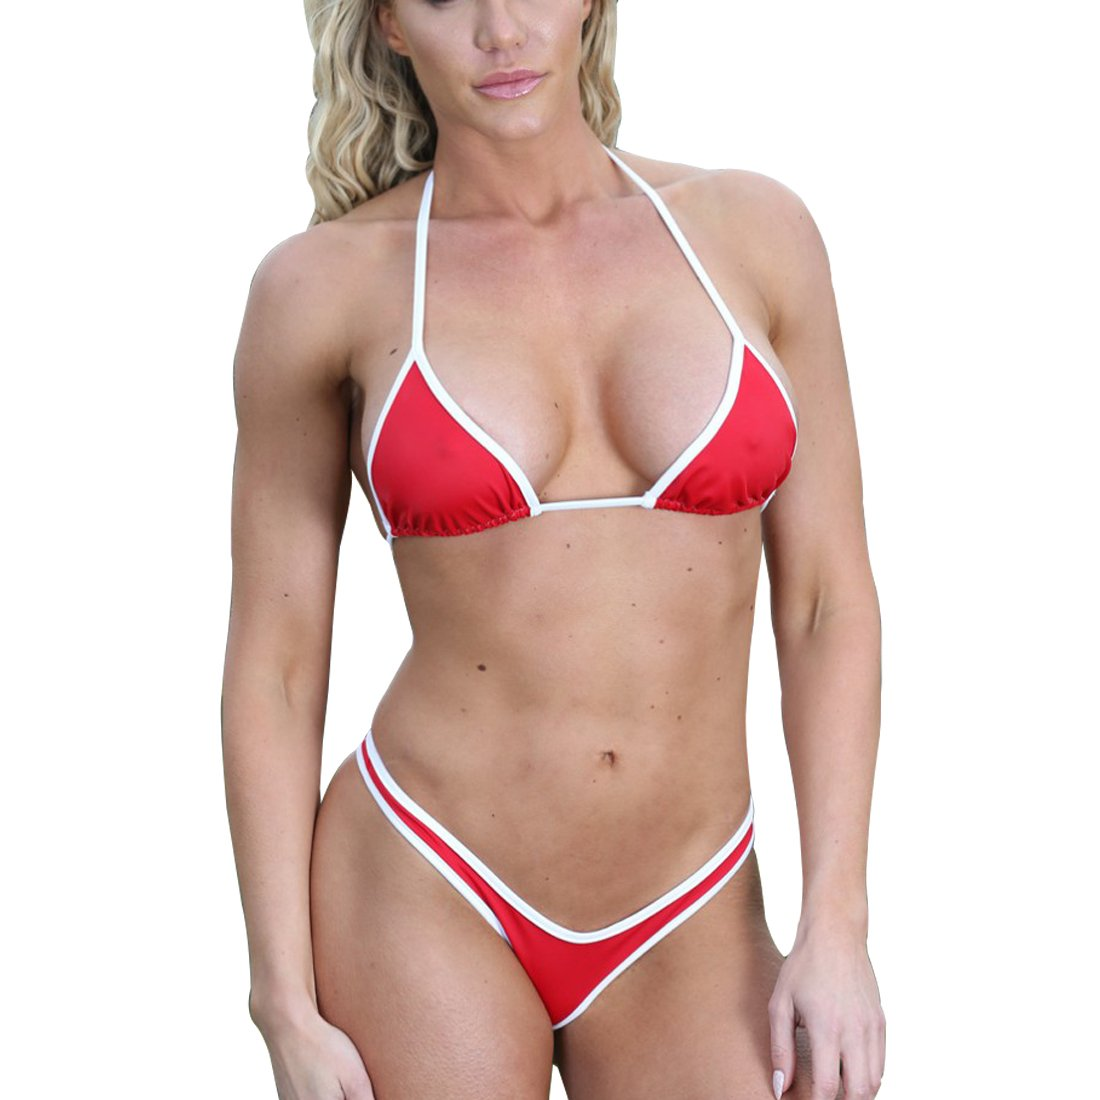 SHERRYLO Triangle Top & Thong Bottom Bikini Set White Red Trim Bathing Suit 17173-Redwhite-M